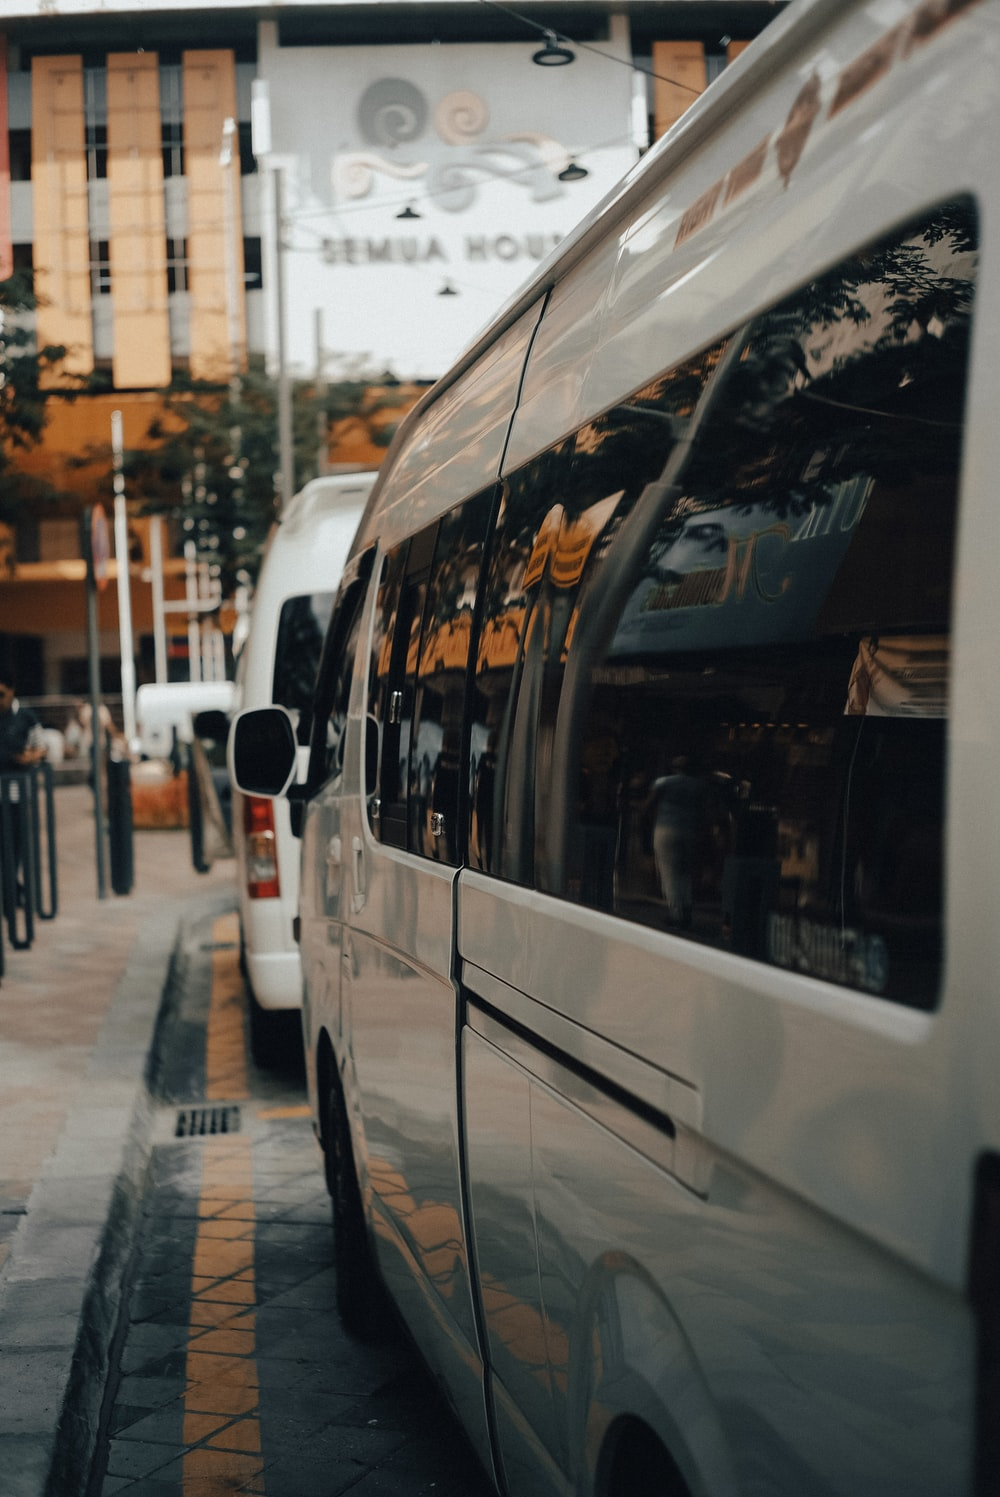 white bus on the street during daytime